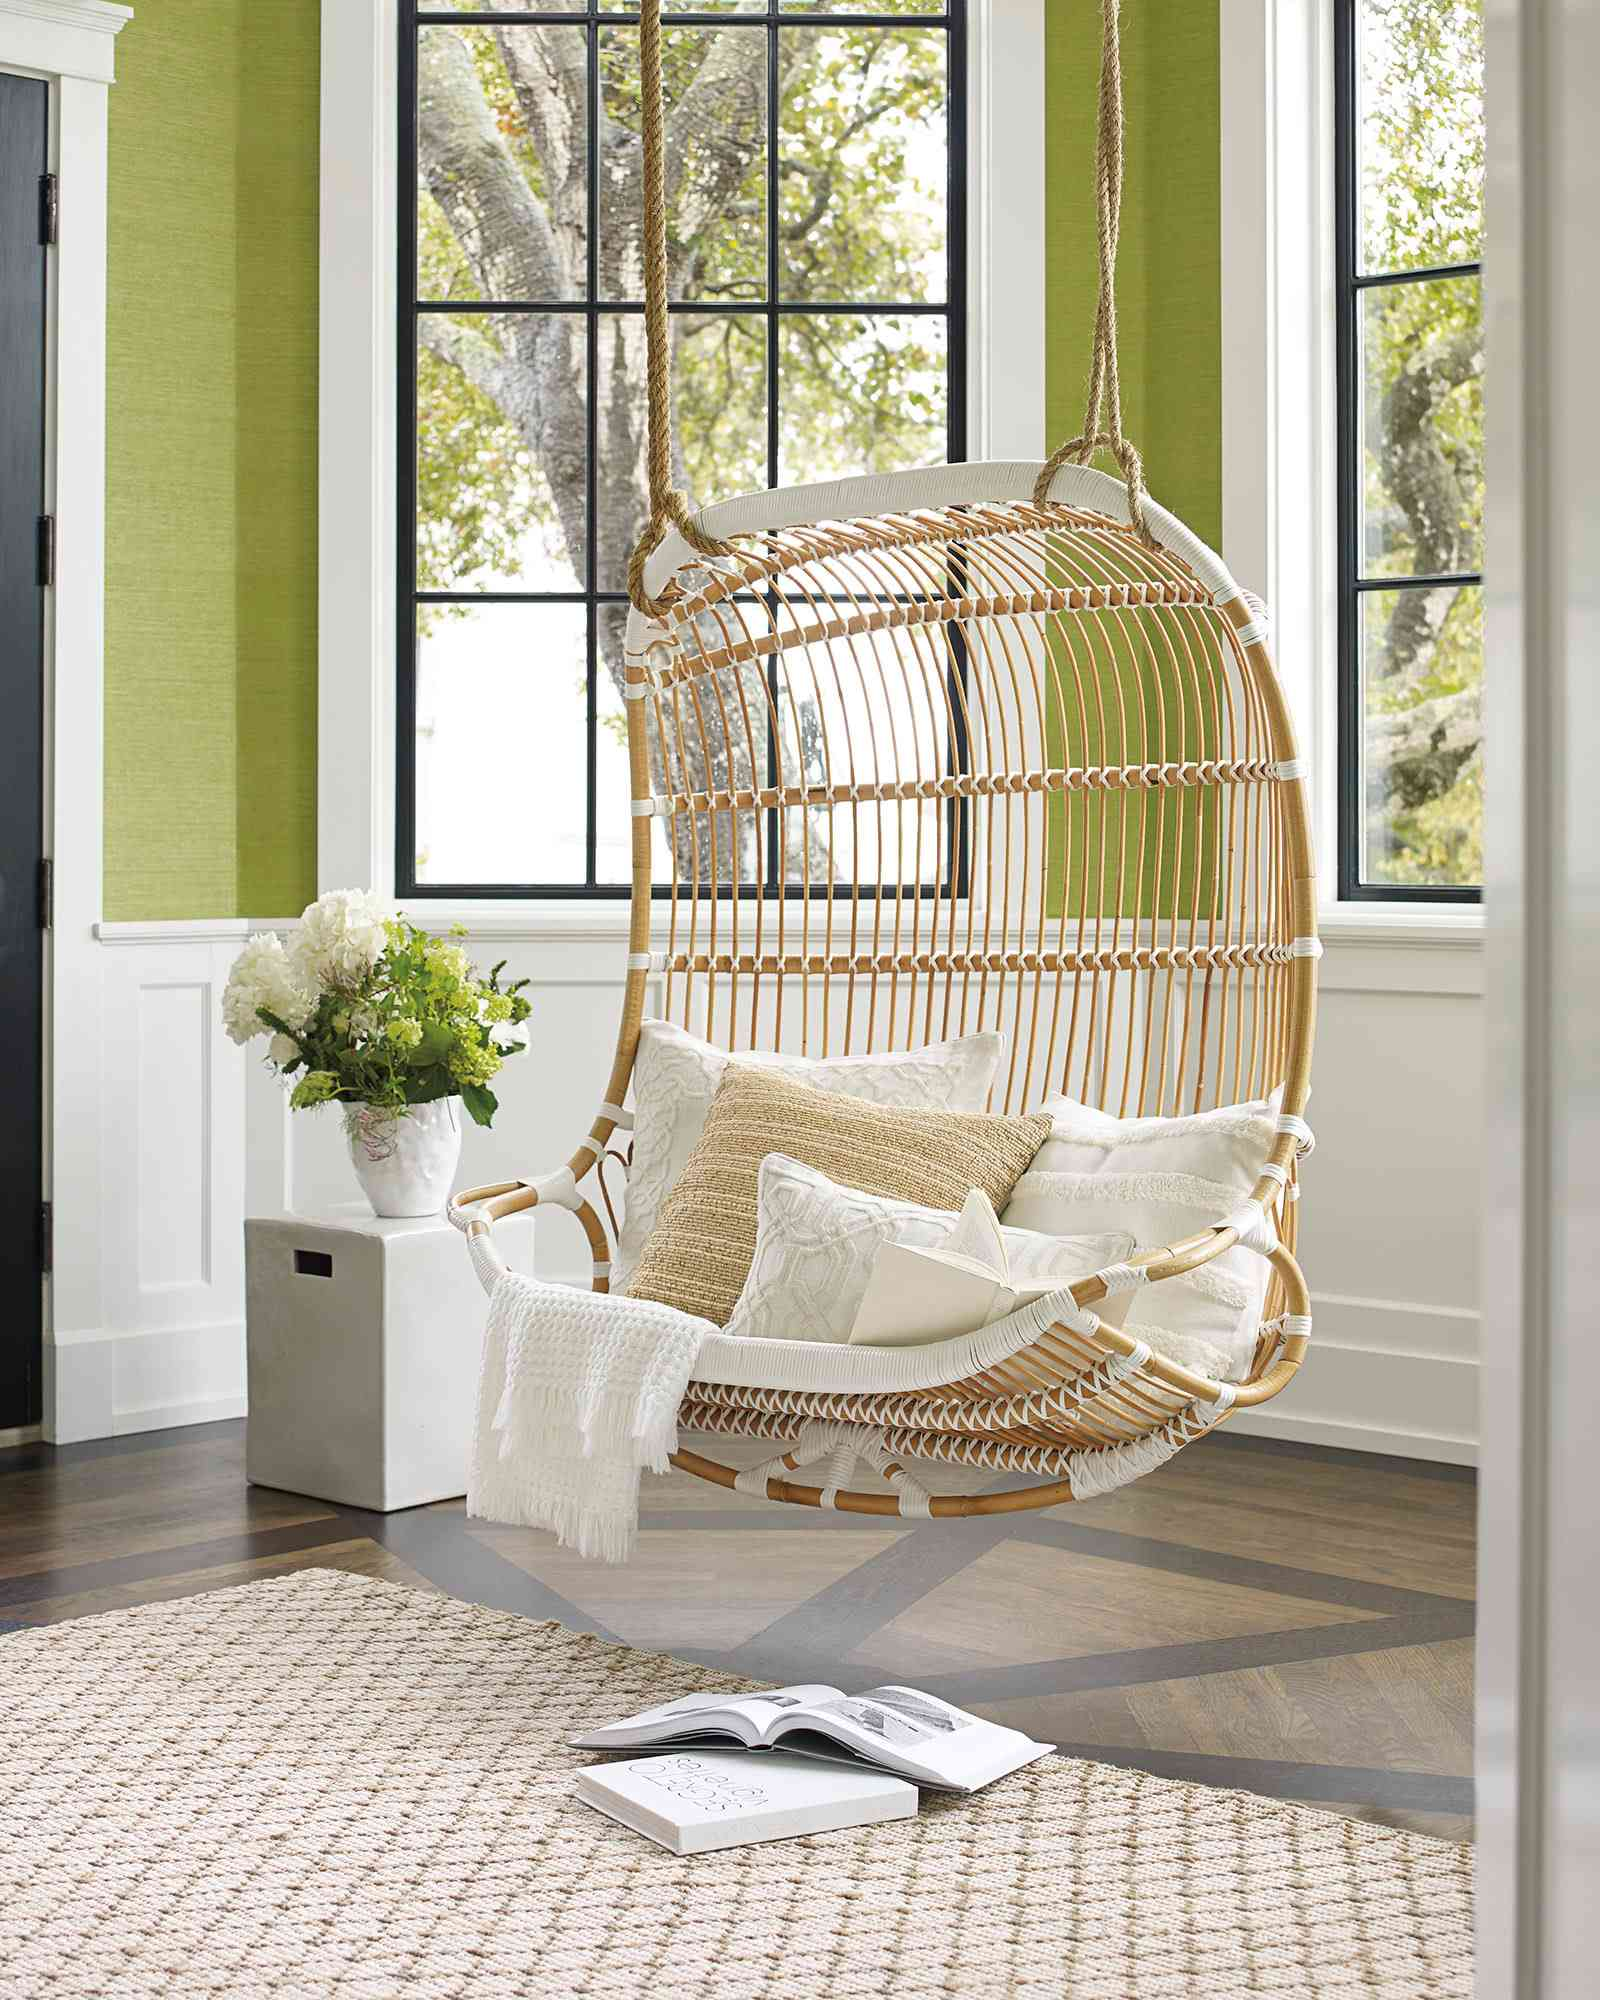 7 Hanging Chairs To Make Any Room Look Cooler